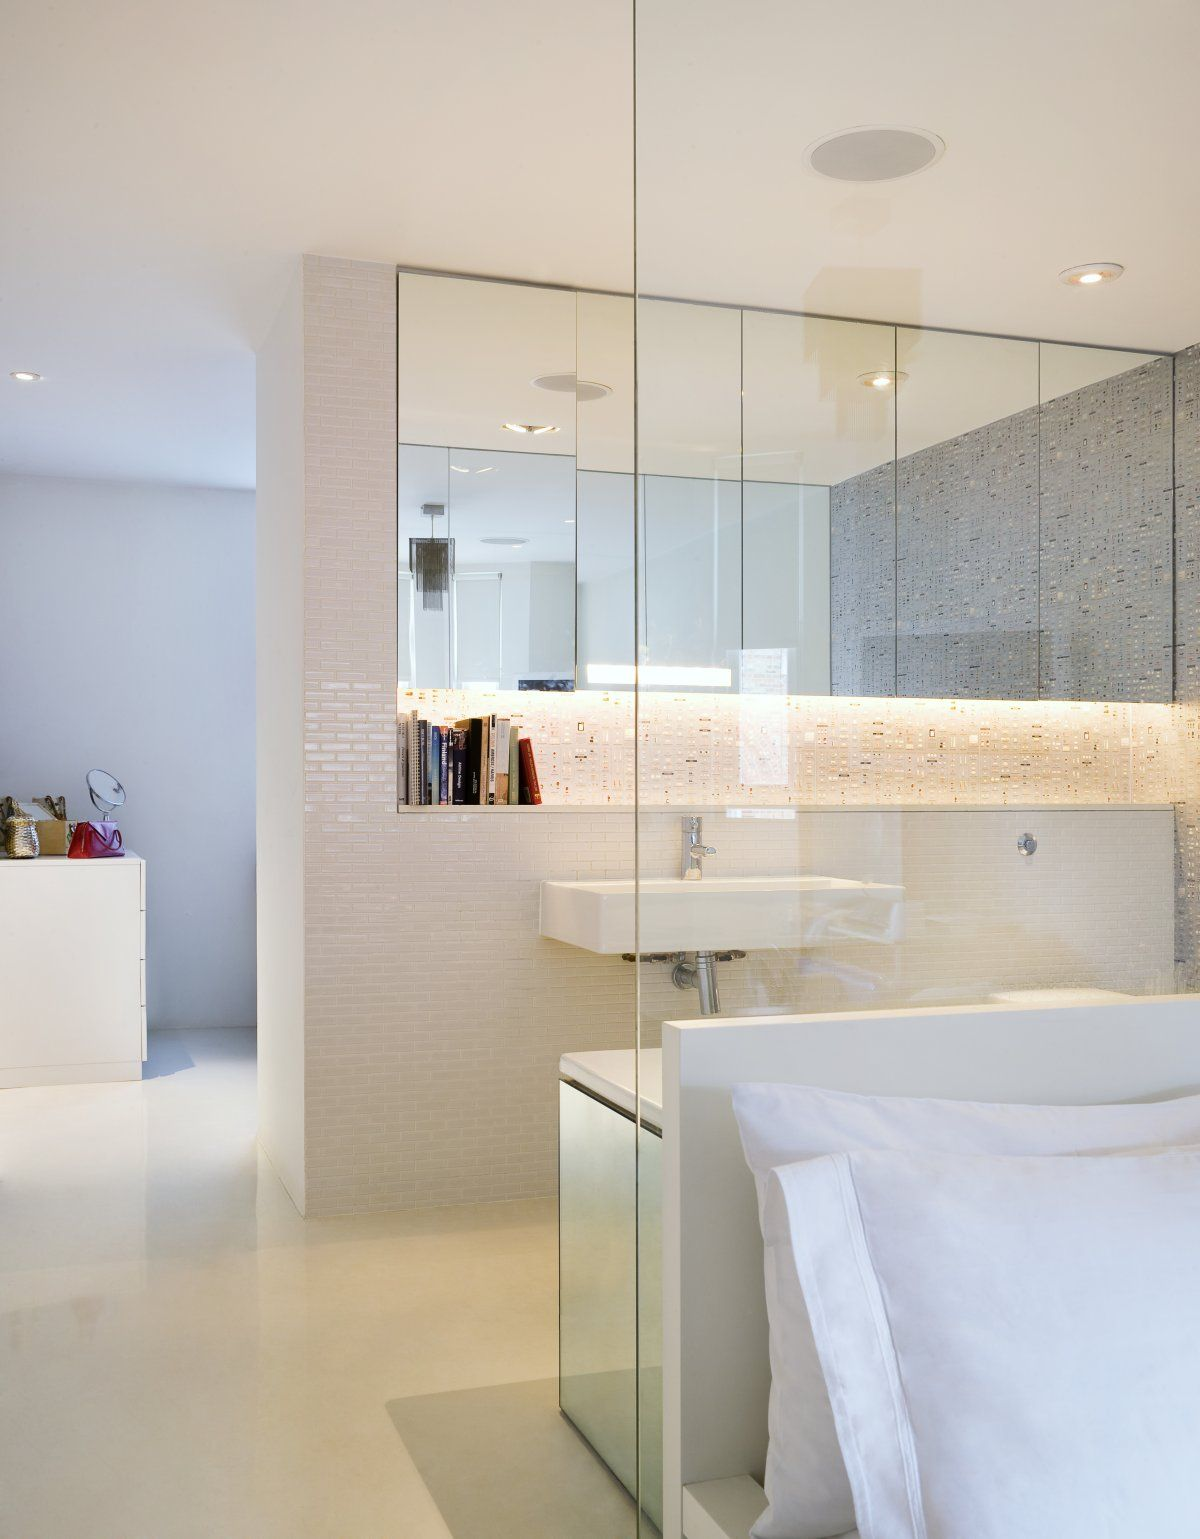 Residence luxury bathroom mews 02 by andy martin architects